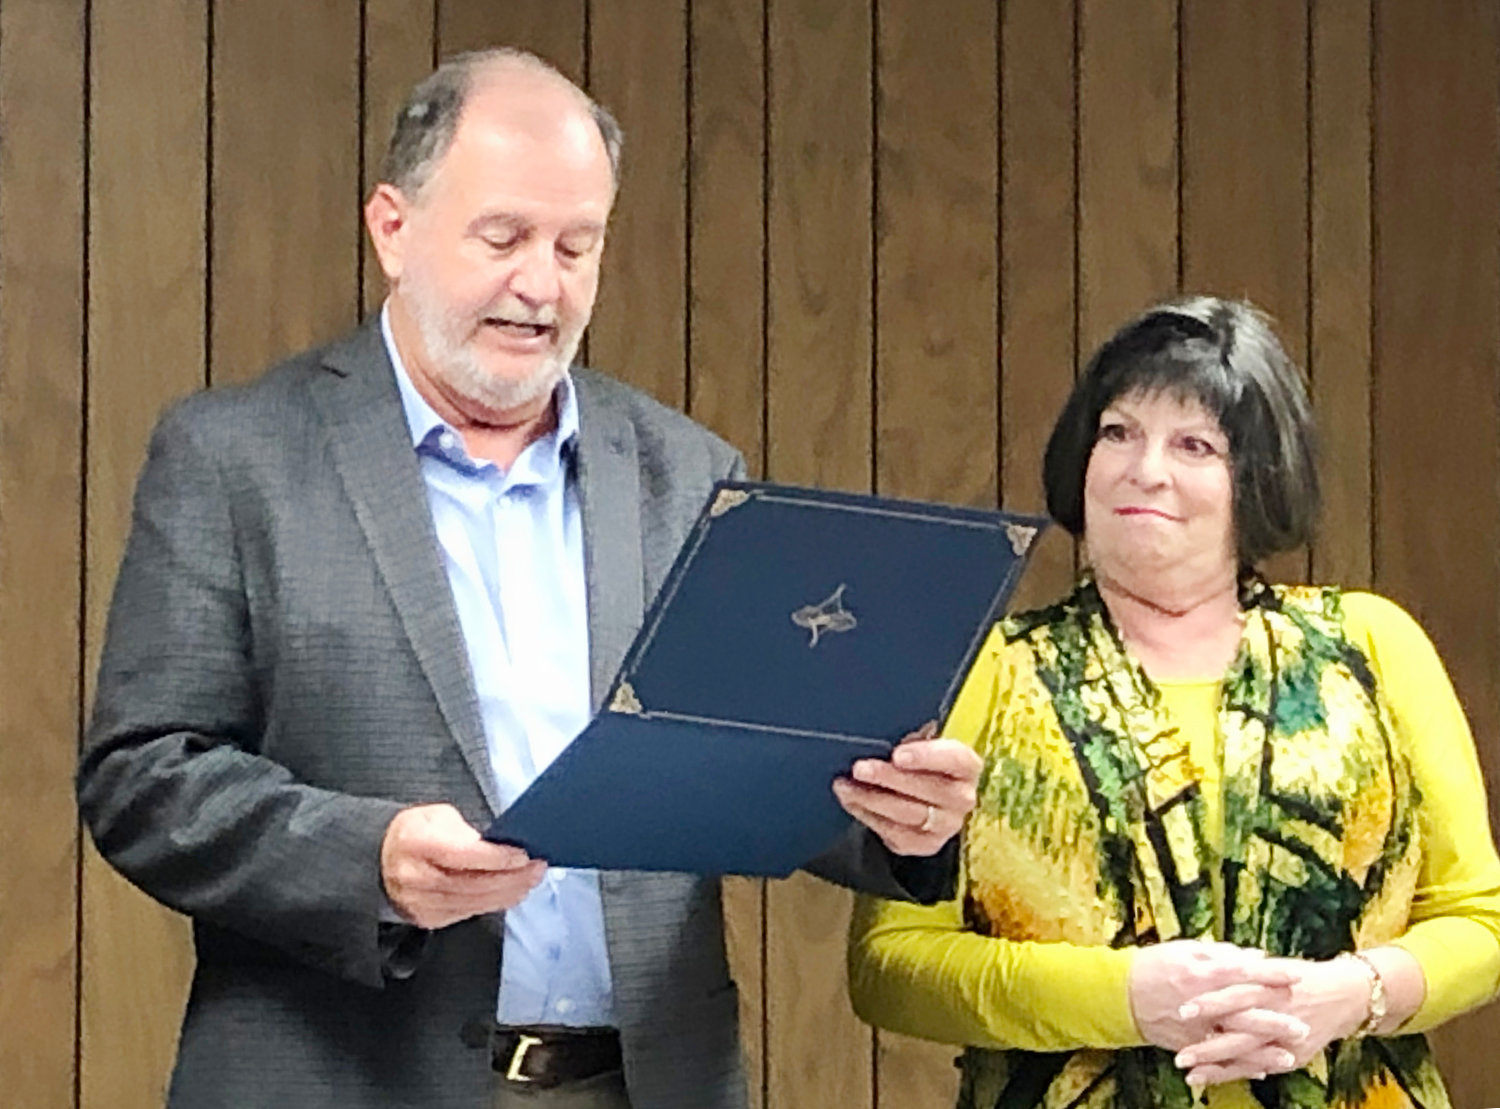 Susan Resnik receives a proclamation from Quitman Mayor Randy Dunn in